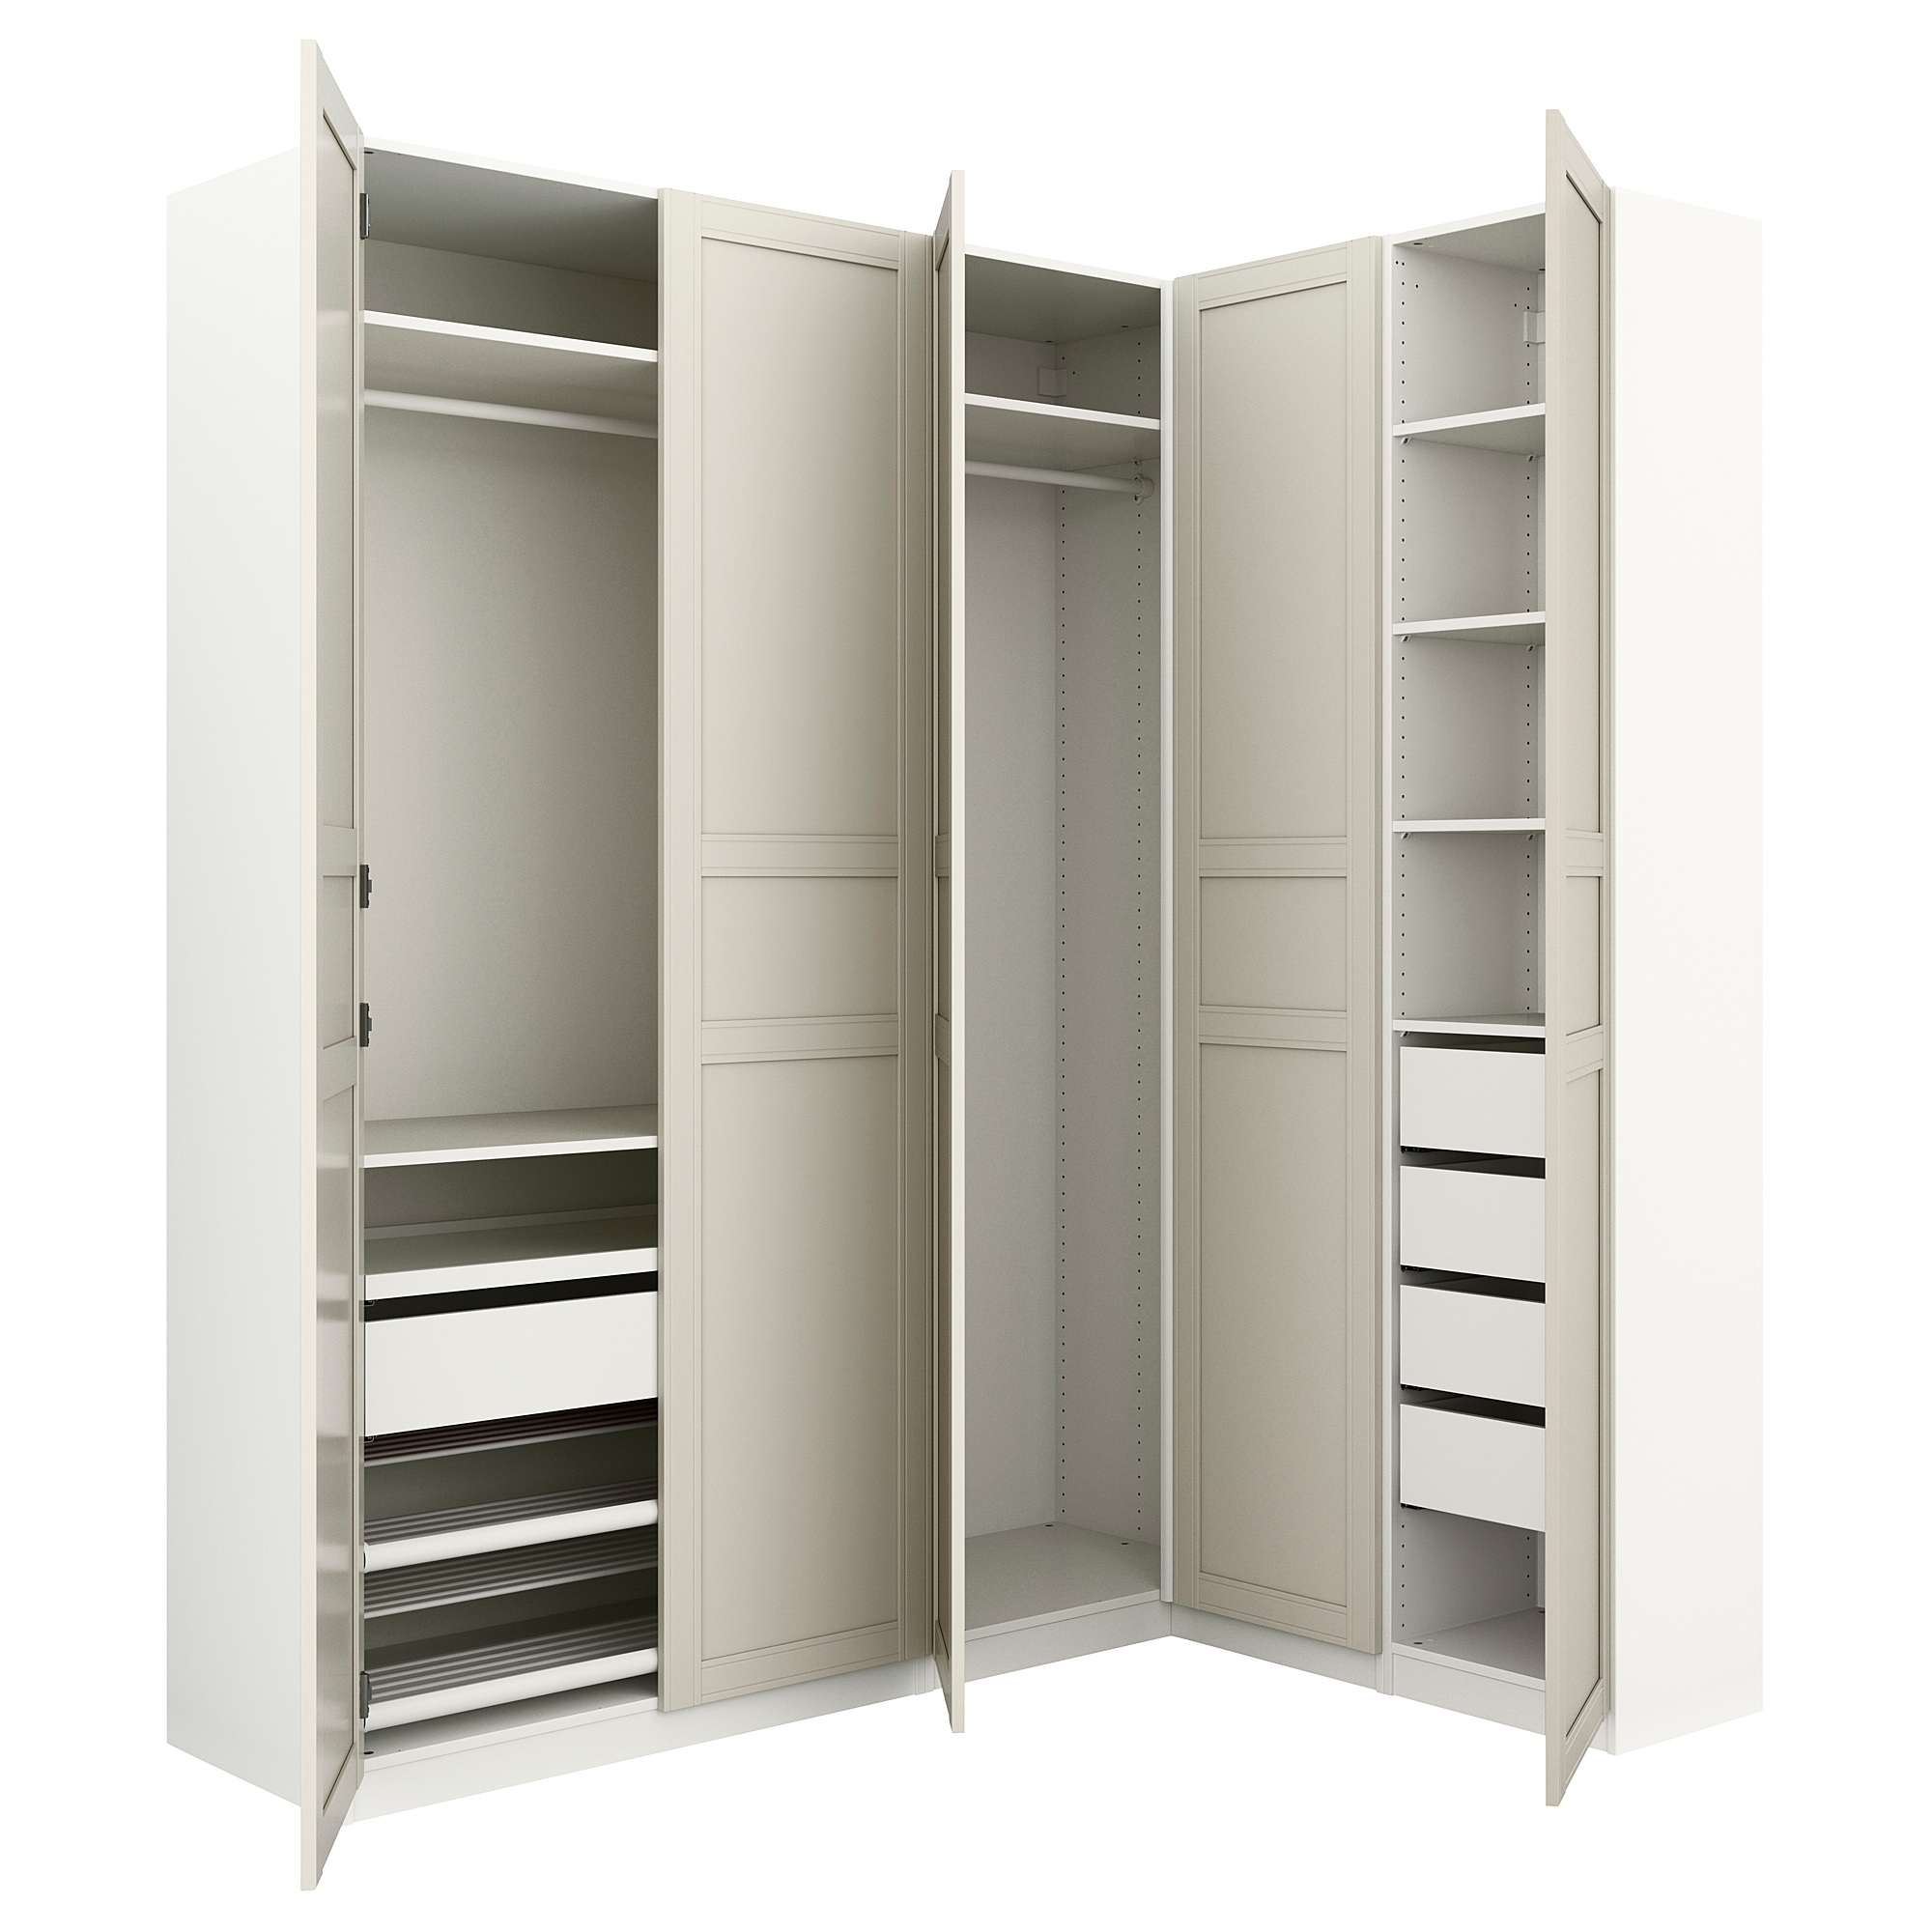 Ikea Wardrobe Event 2019 15 Best Collection Of Corner Wardrobes Closet Ikea